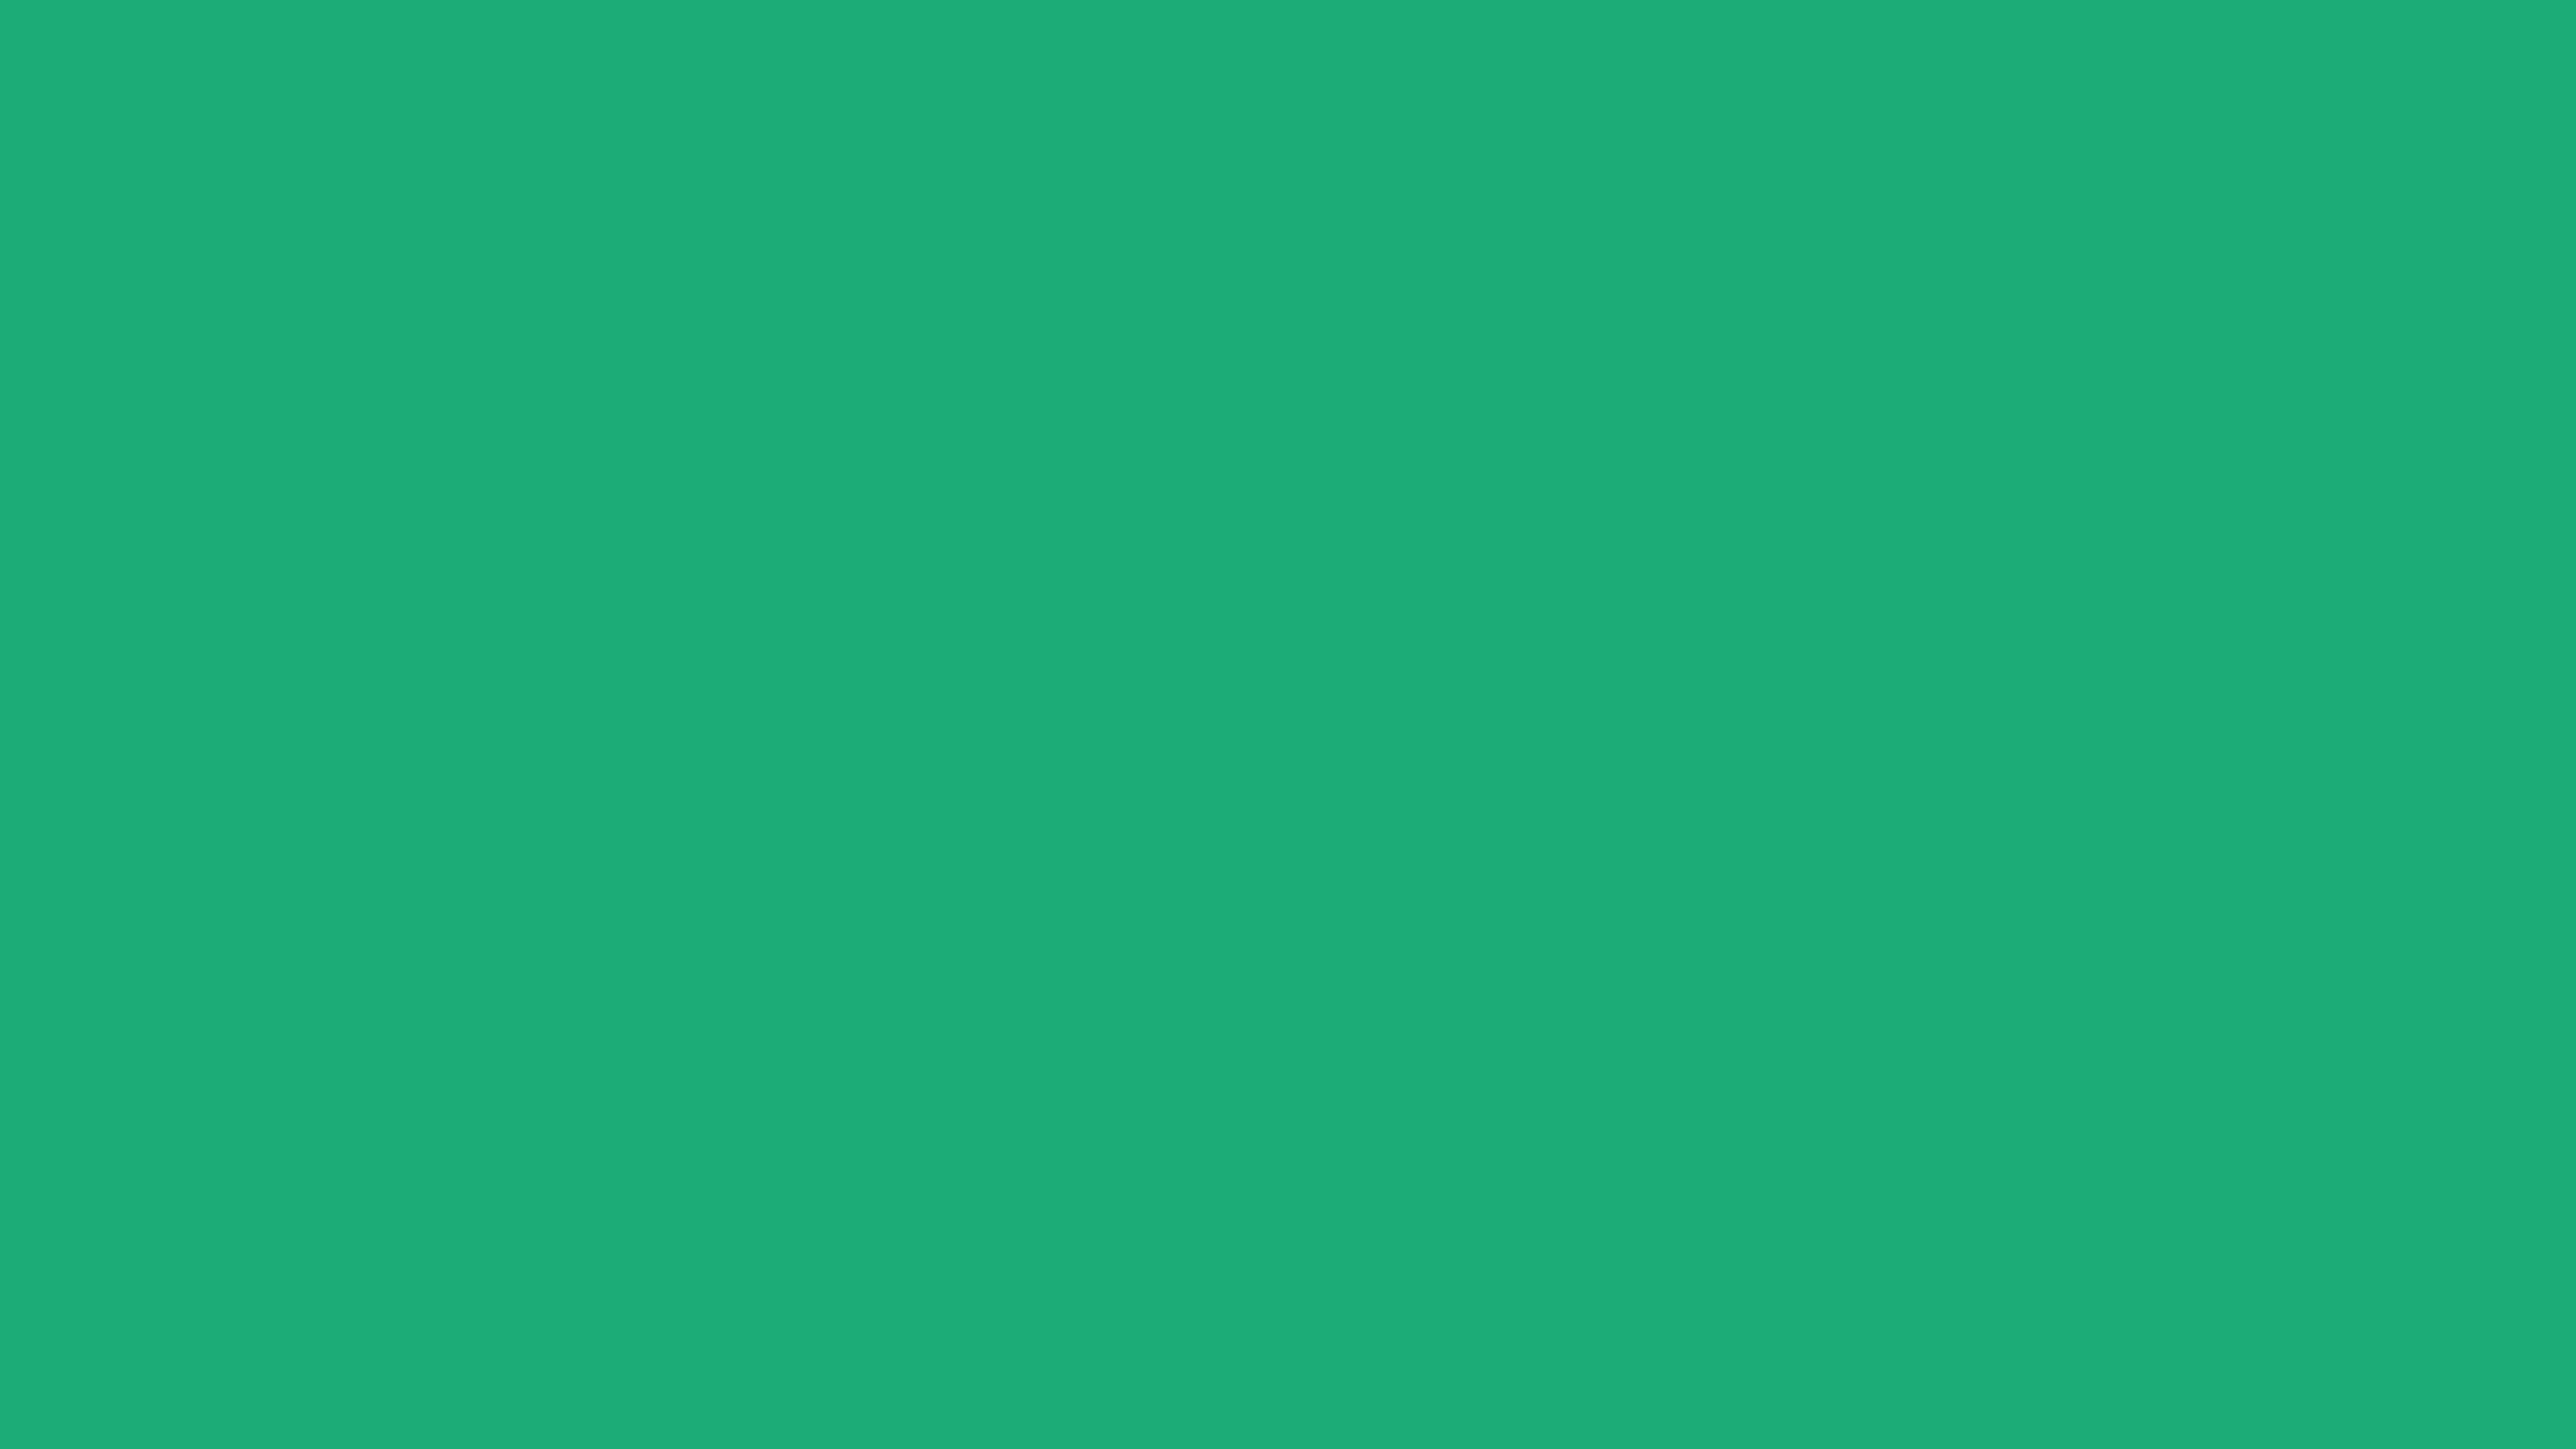 7680x4320 Green Crayola Solid Color Background